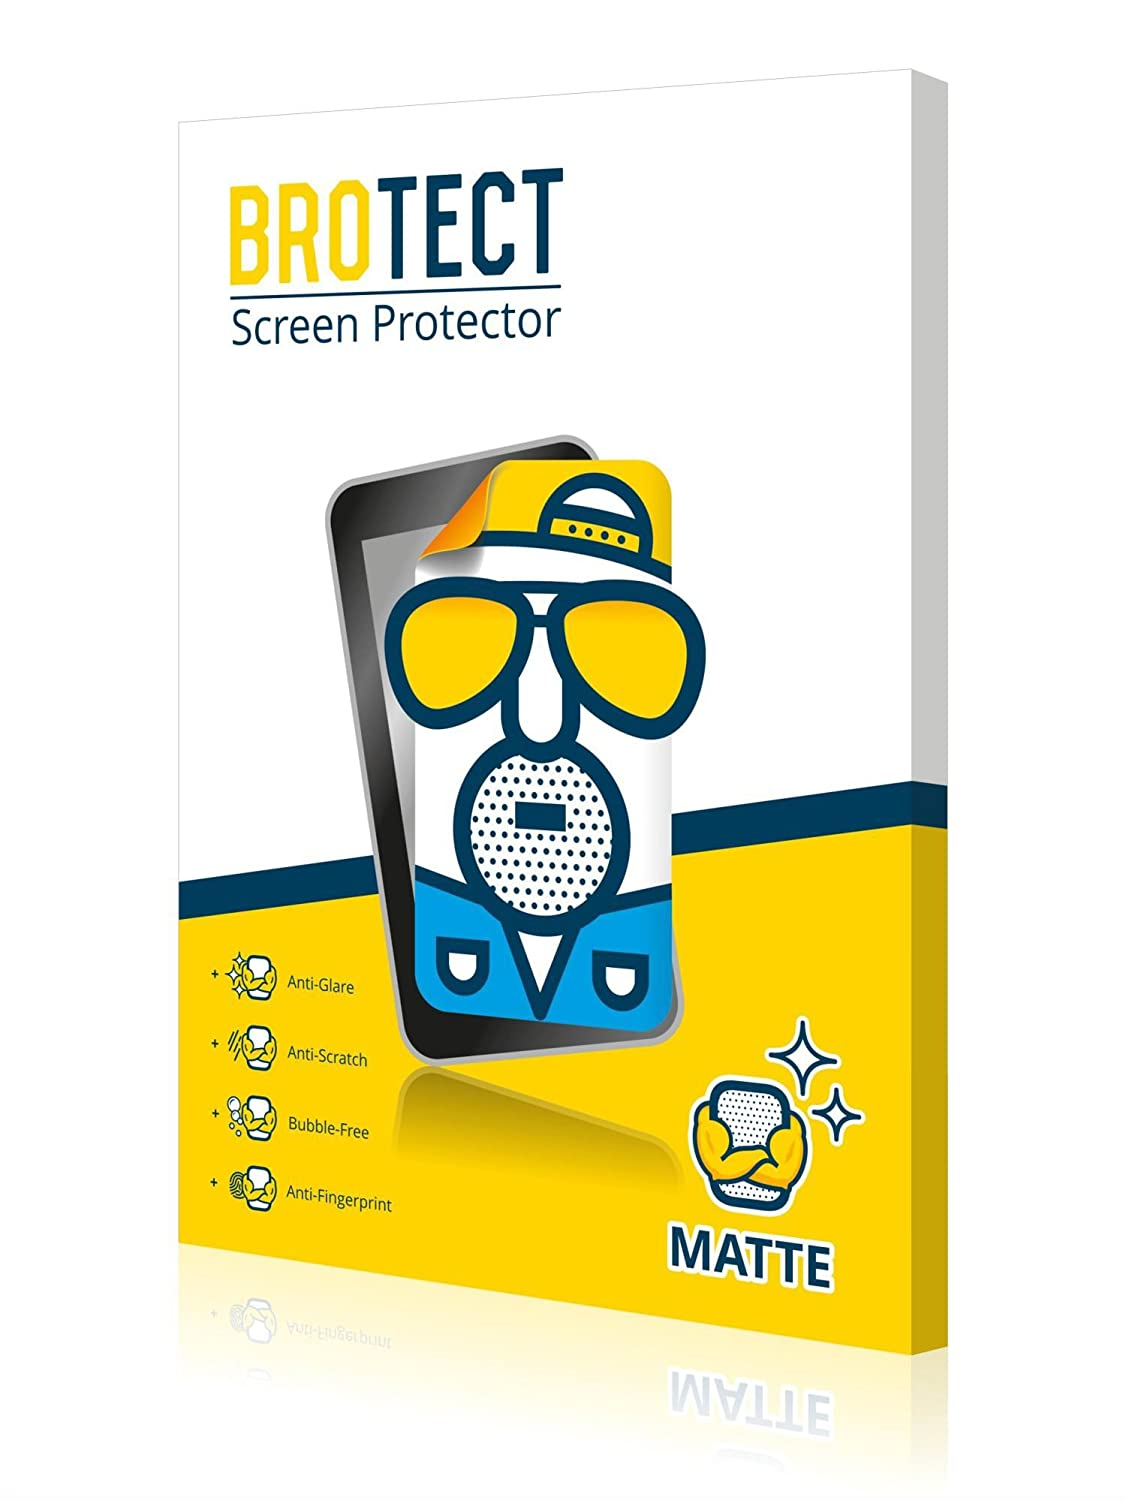 2X BROTECT Matte Screen Protector Ricoh GR Digital II, Matte, Anti-Glare, Anti-Scratch